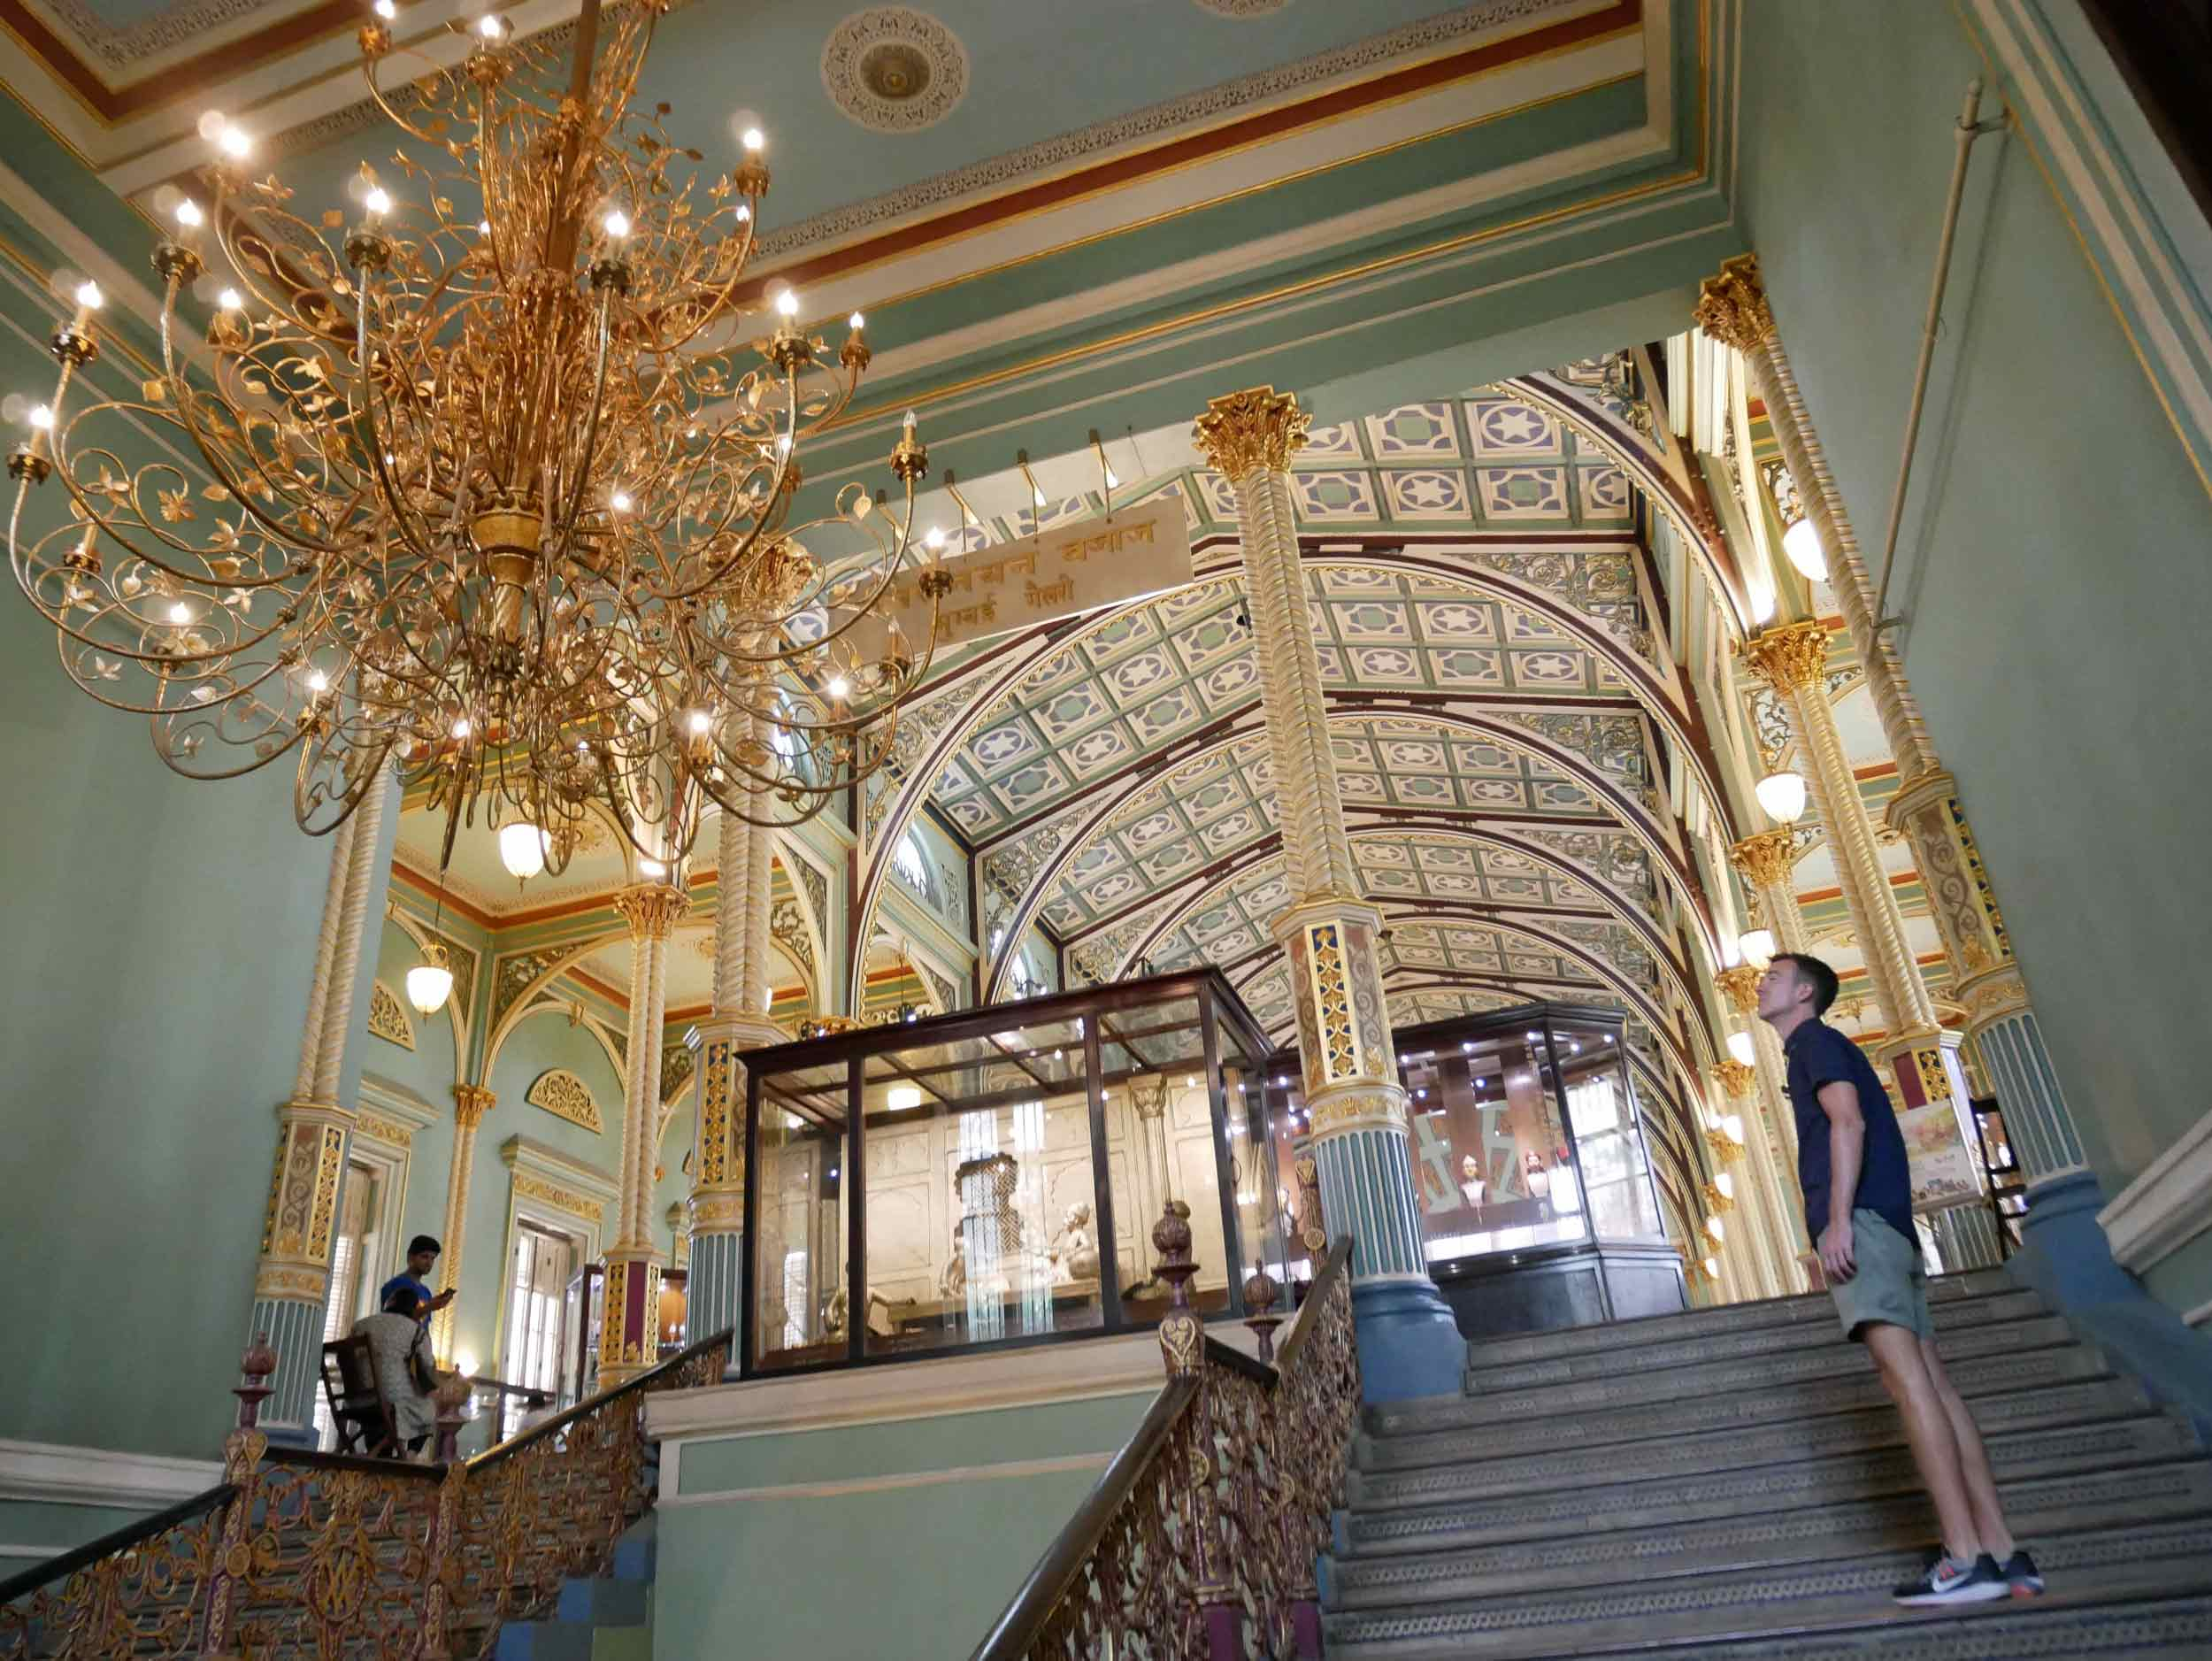 It was established in 1855 as a treasure house of the decorative and industrial arts.